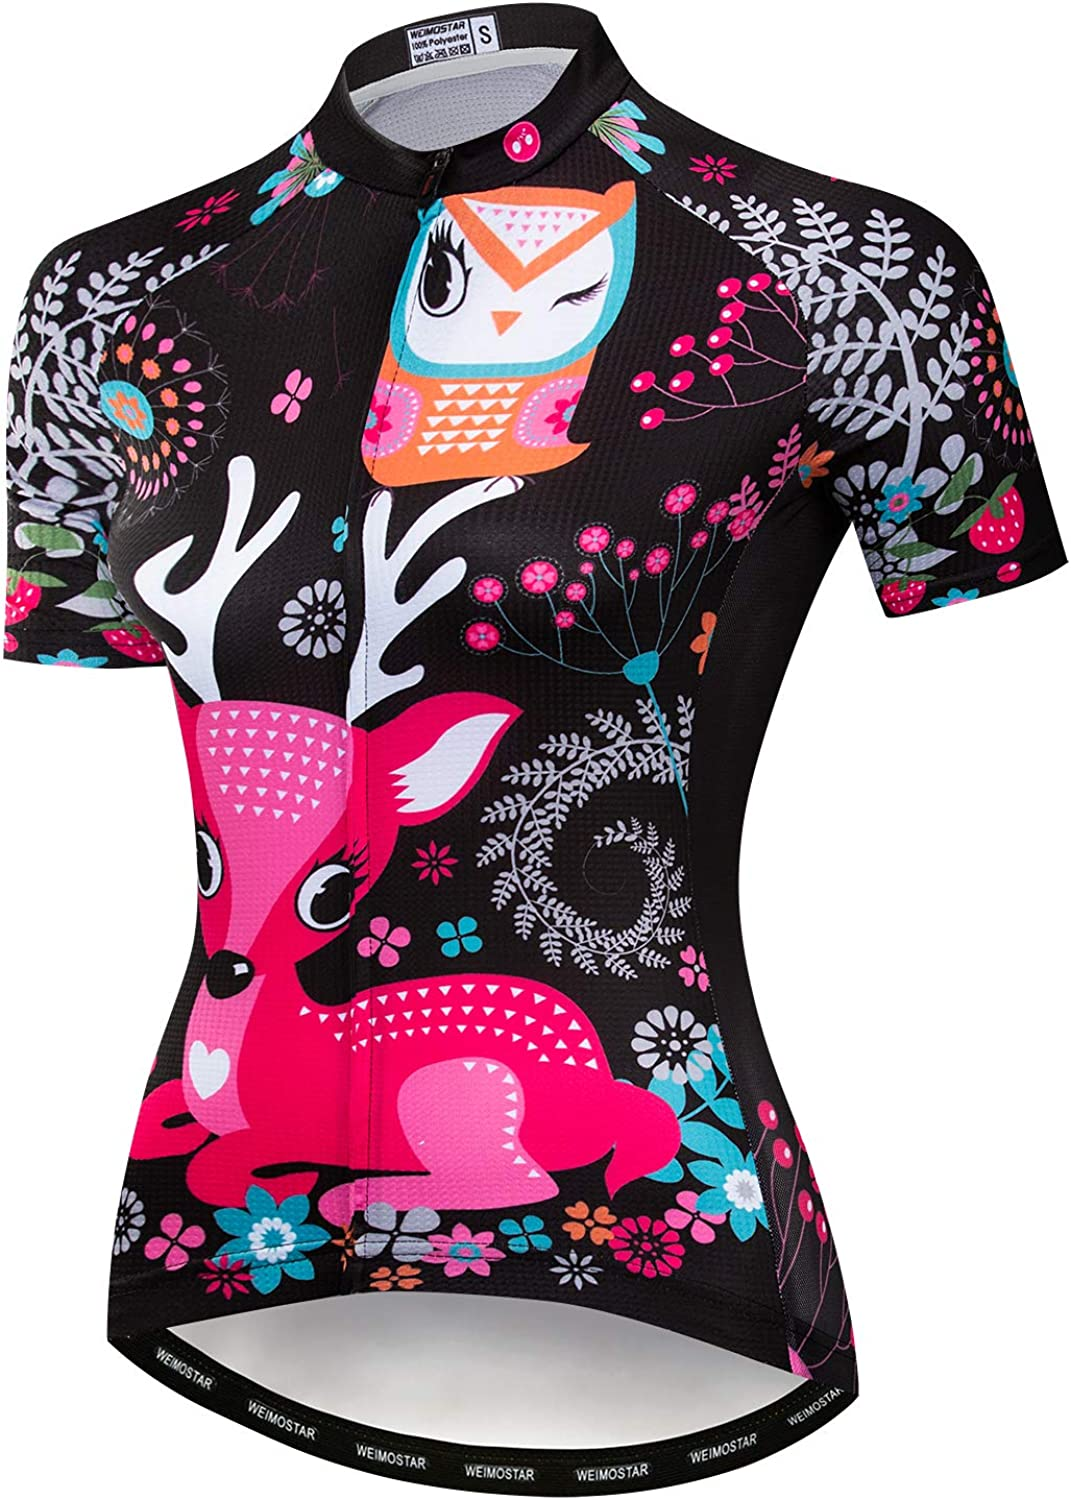 Women/'s Short Sleeve Cycling Jersey Ladies Reflective Cycle Clothing Shirt Top